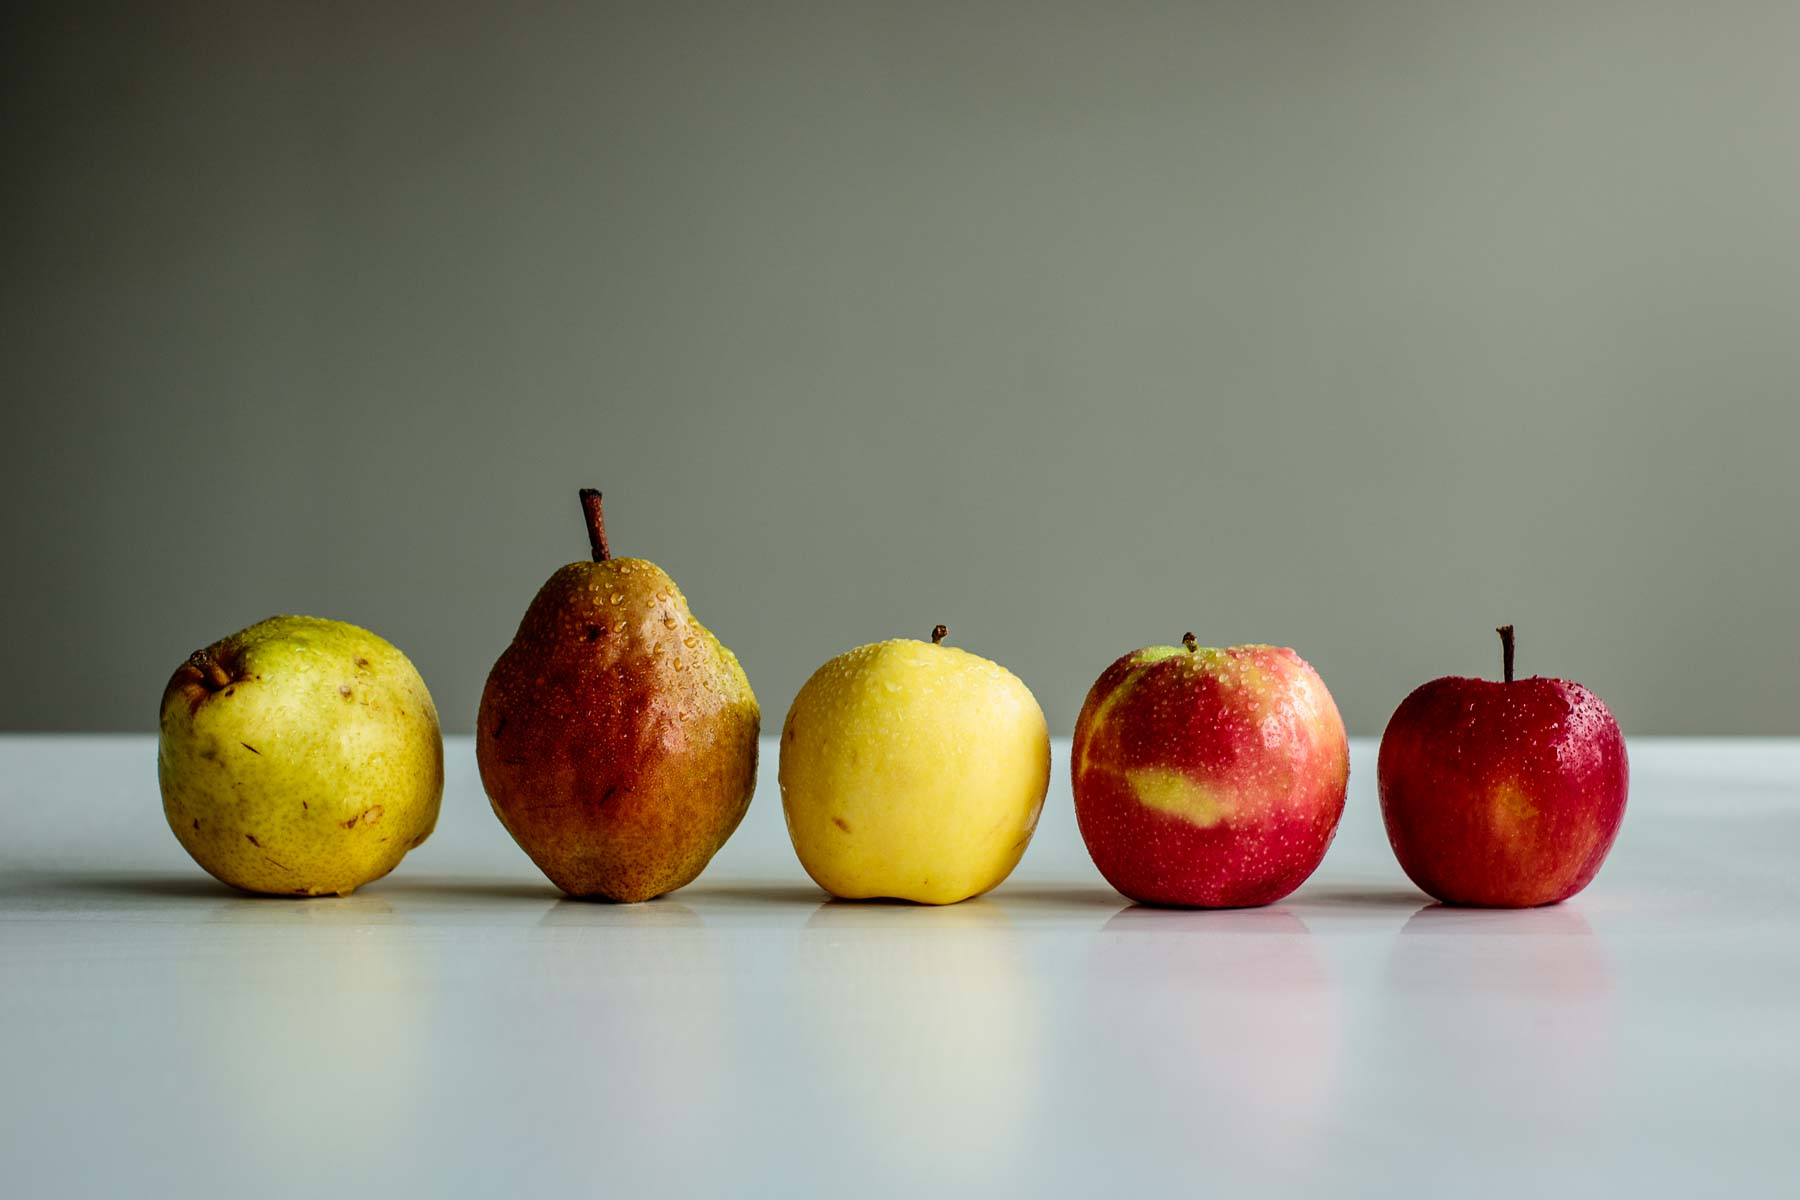 a line of pears and apples